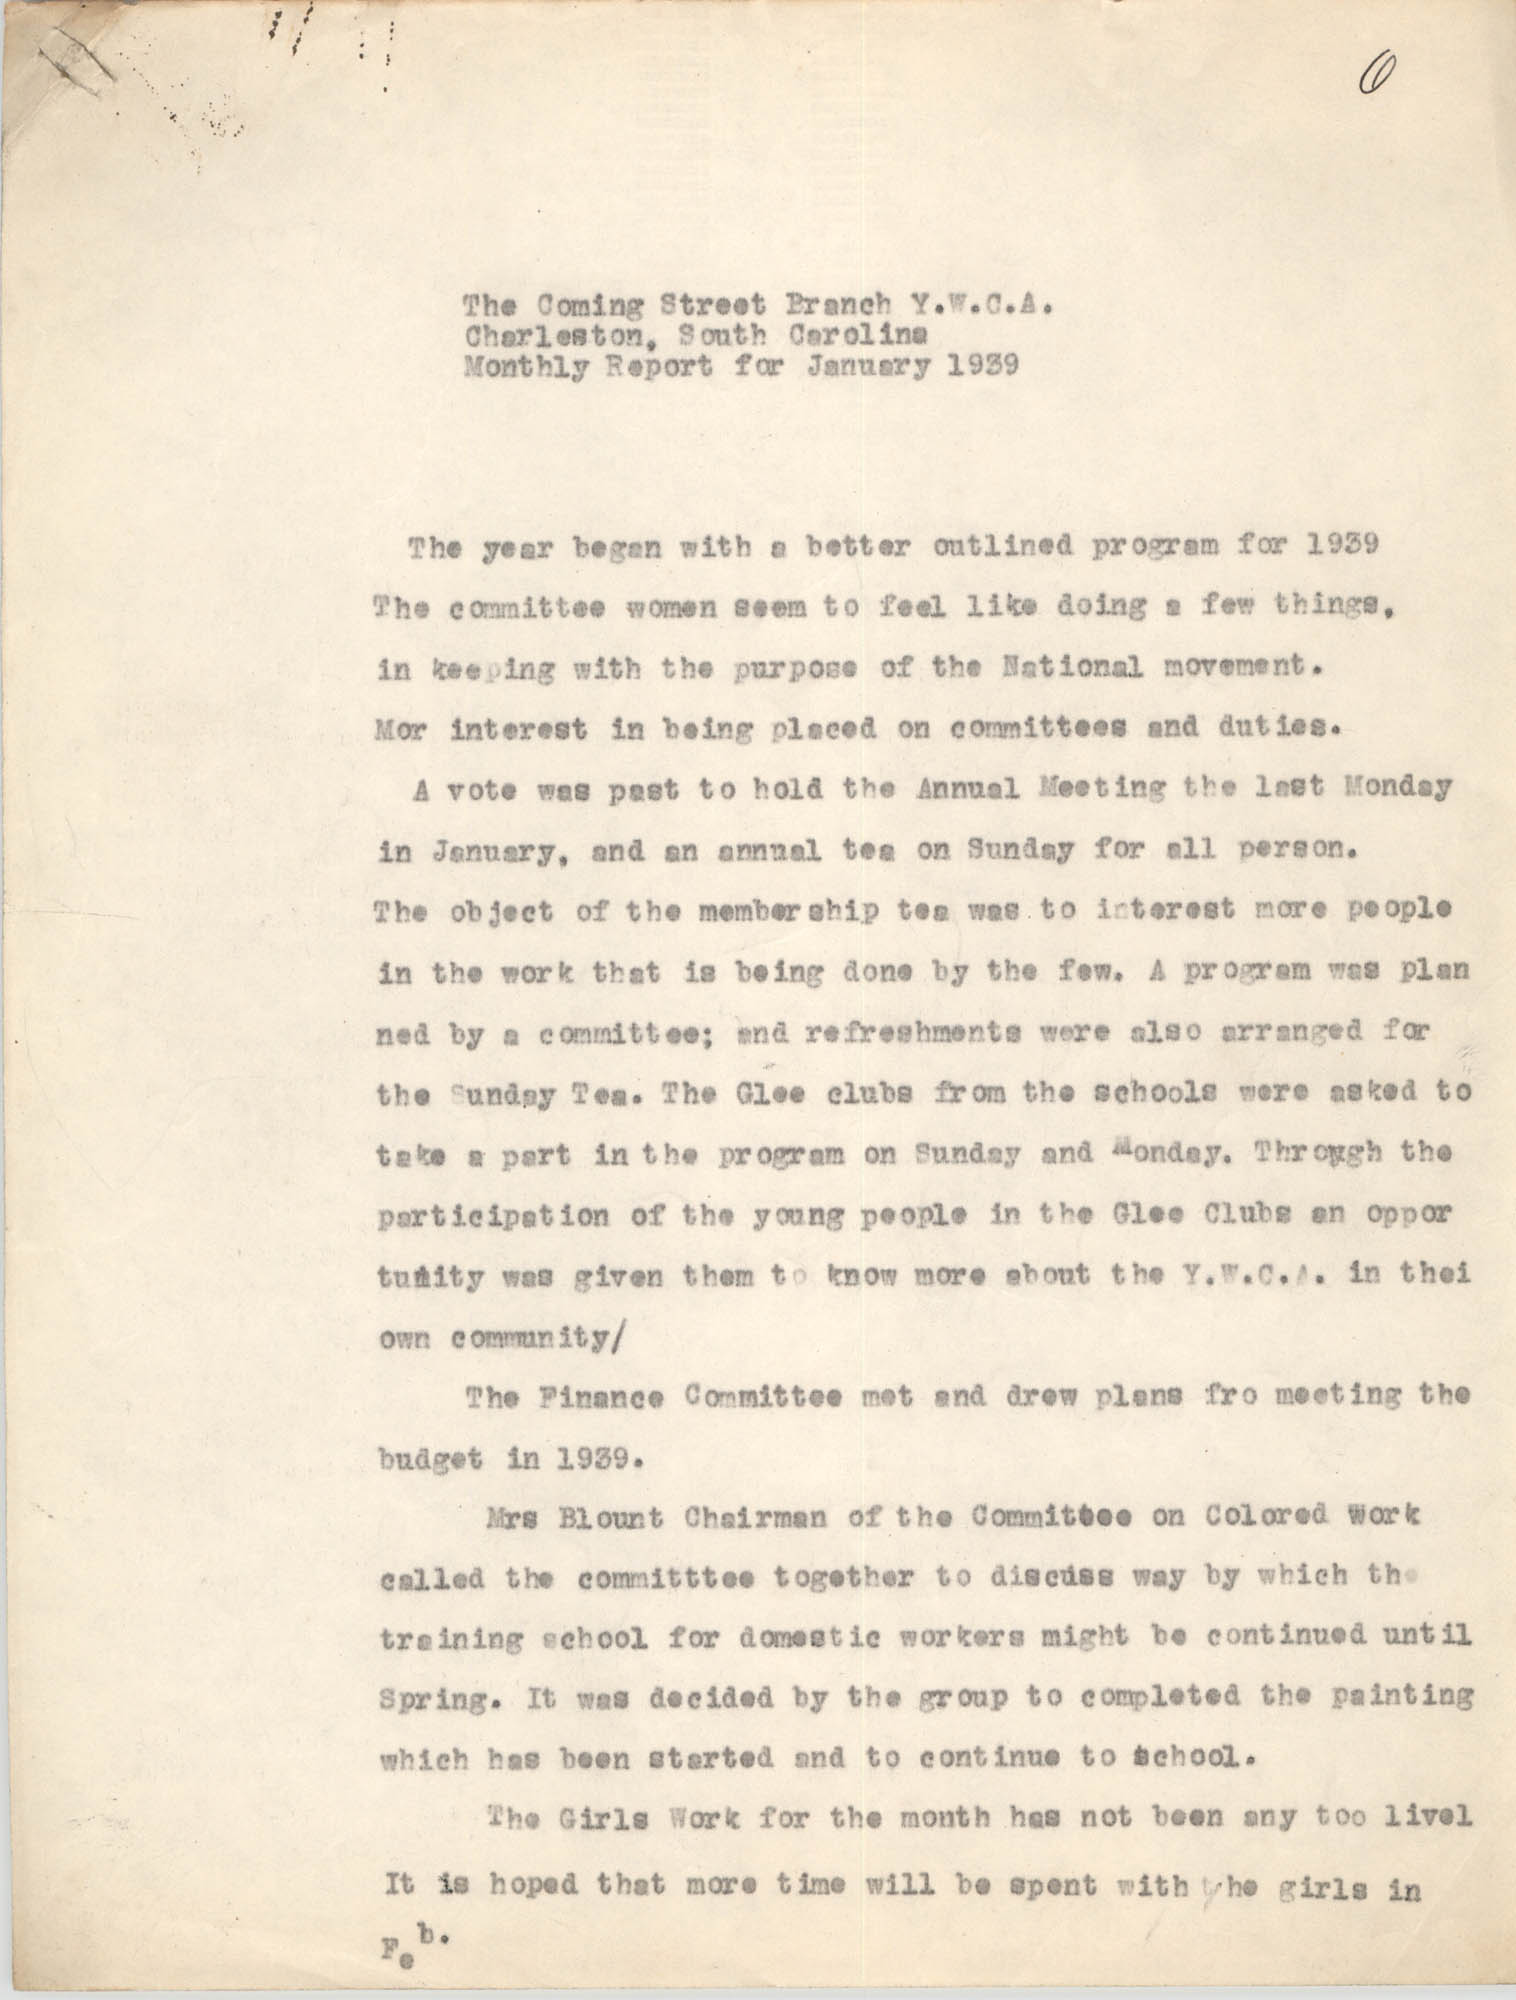 Monthly Report for the Coming Street Y.W.C.A., January 1939